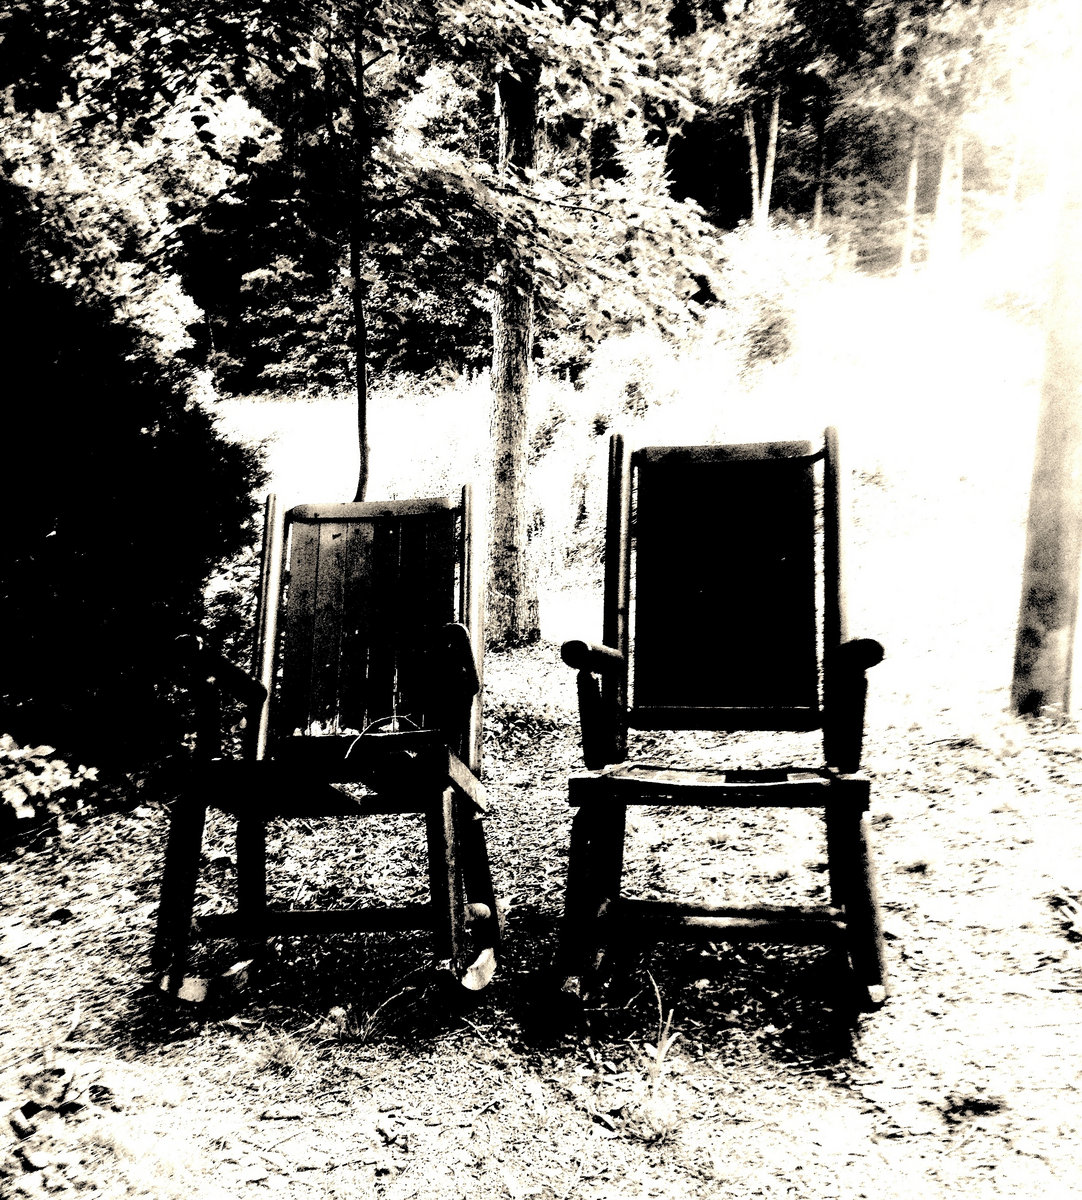 Empty Rocking Chairs  sc 1 st  Dayvid McClung - Bandc& & Empty Rocking Chairs | Dayvid McClung